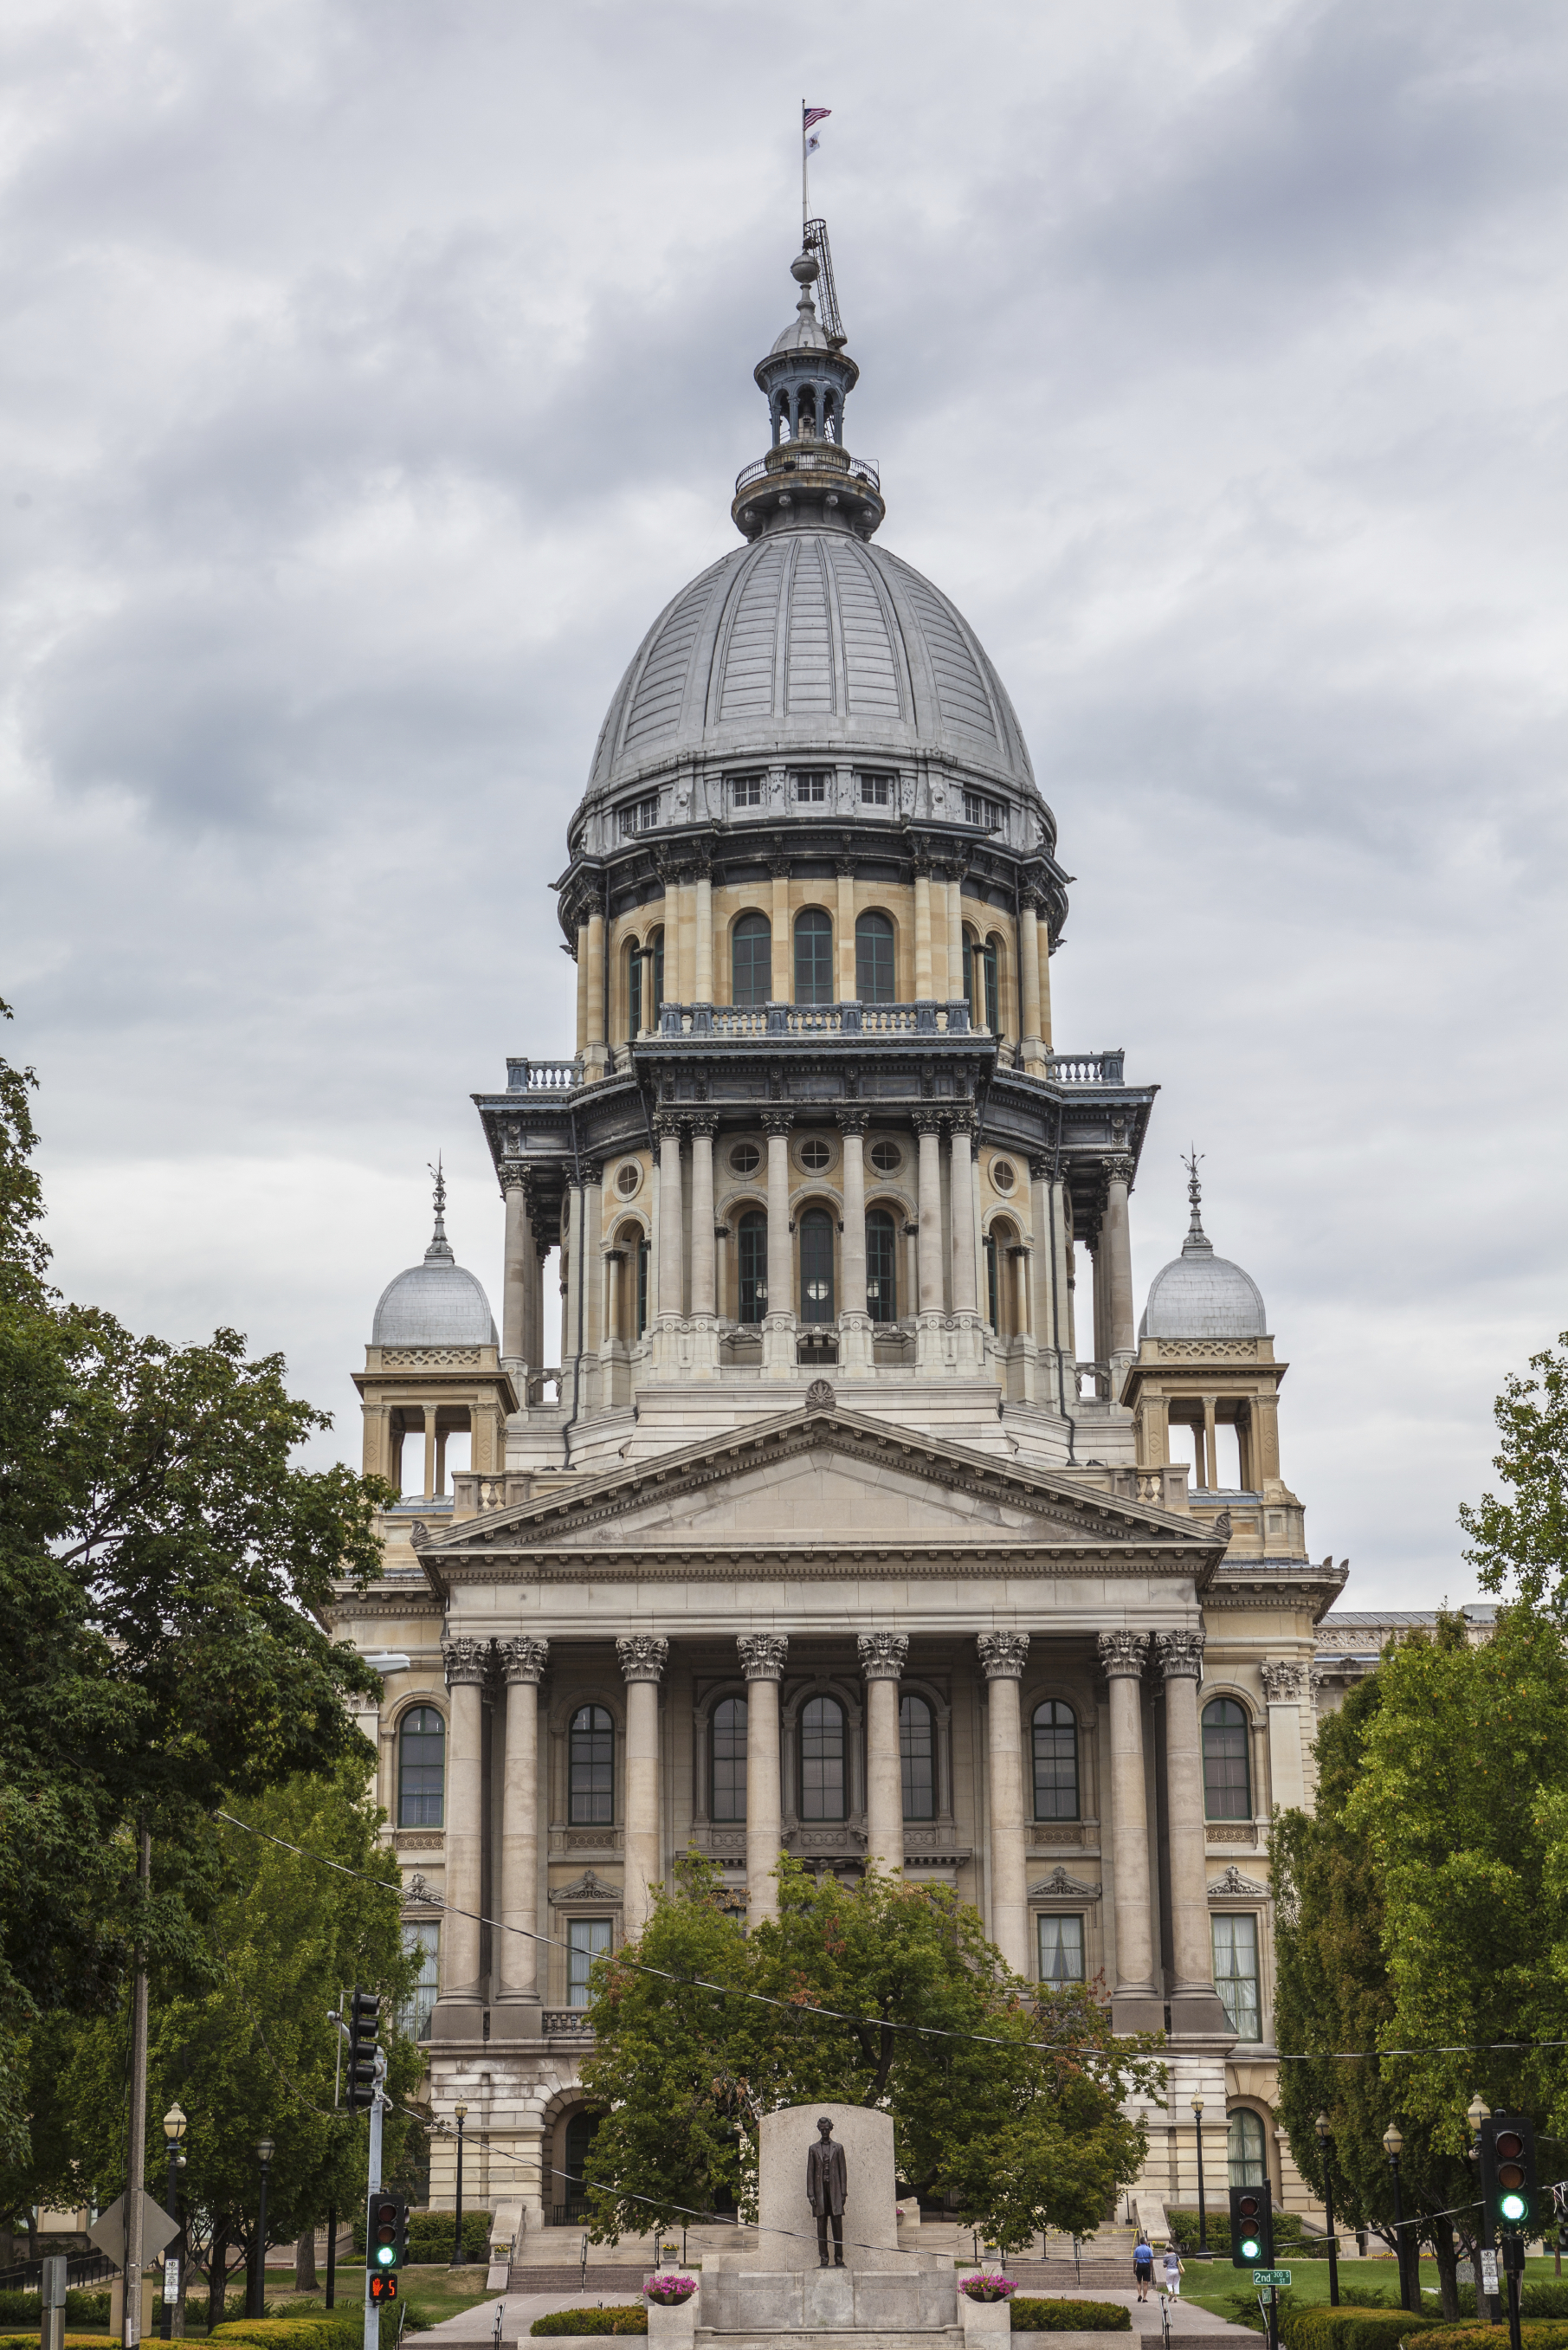 http://www.istockphoto.com/photo/illinois-state-house-and-capitol-building-21414378